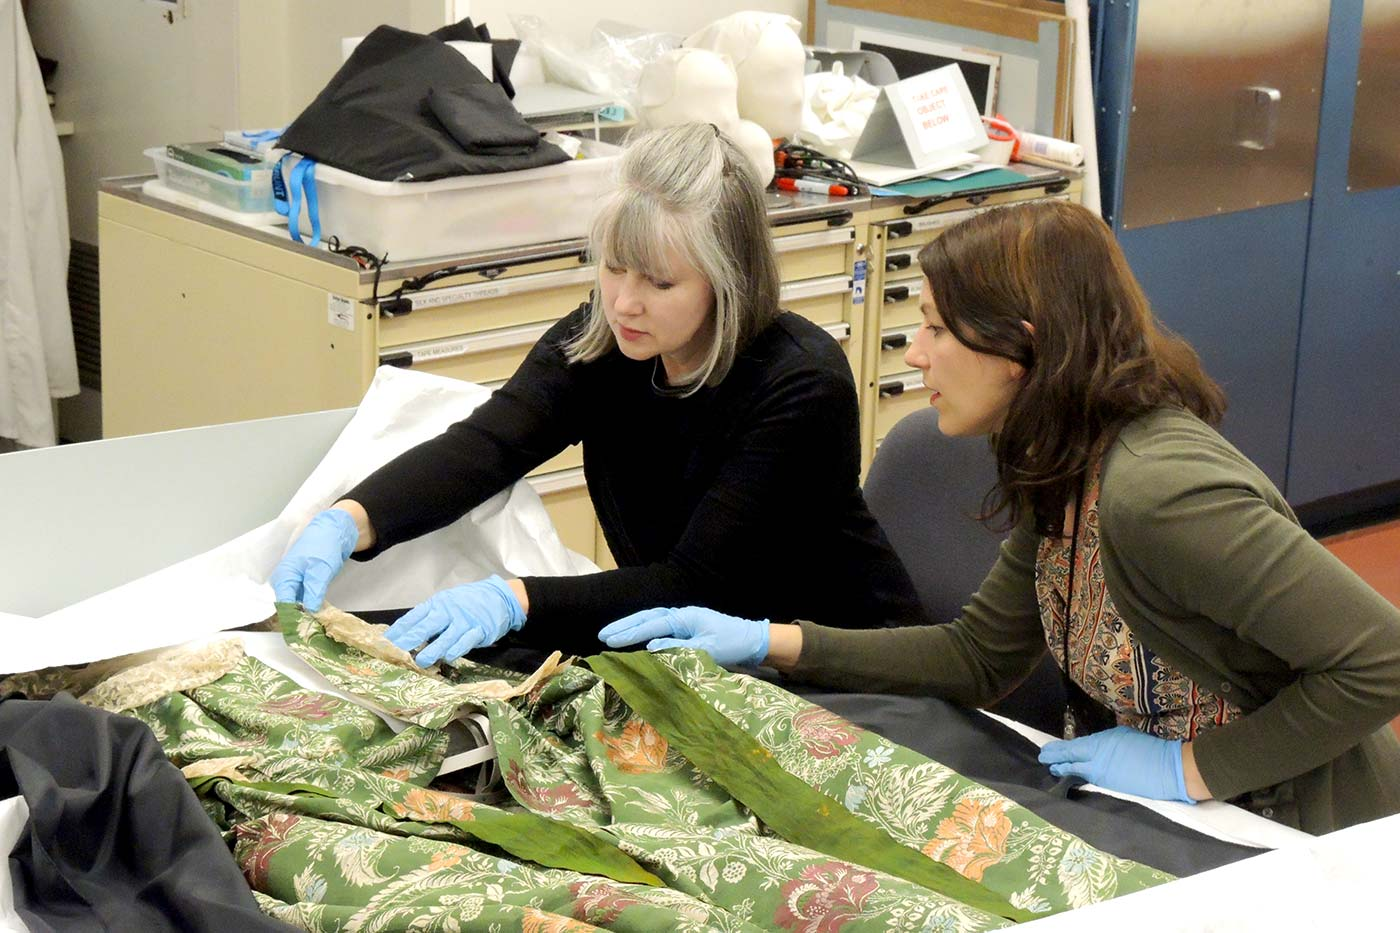 Two female conservators work on a dress with intricate pattern and lace detail in a laboratory.